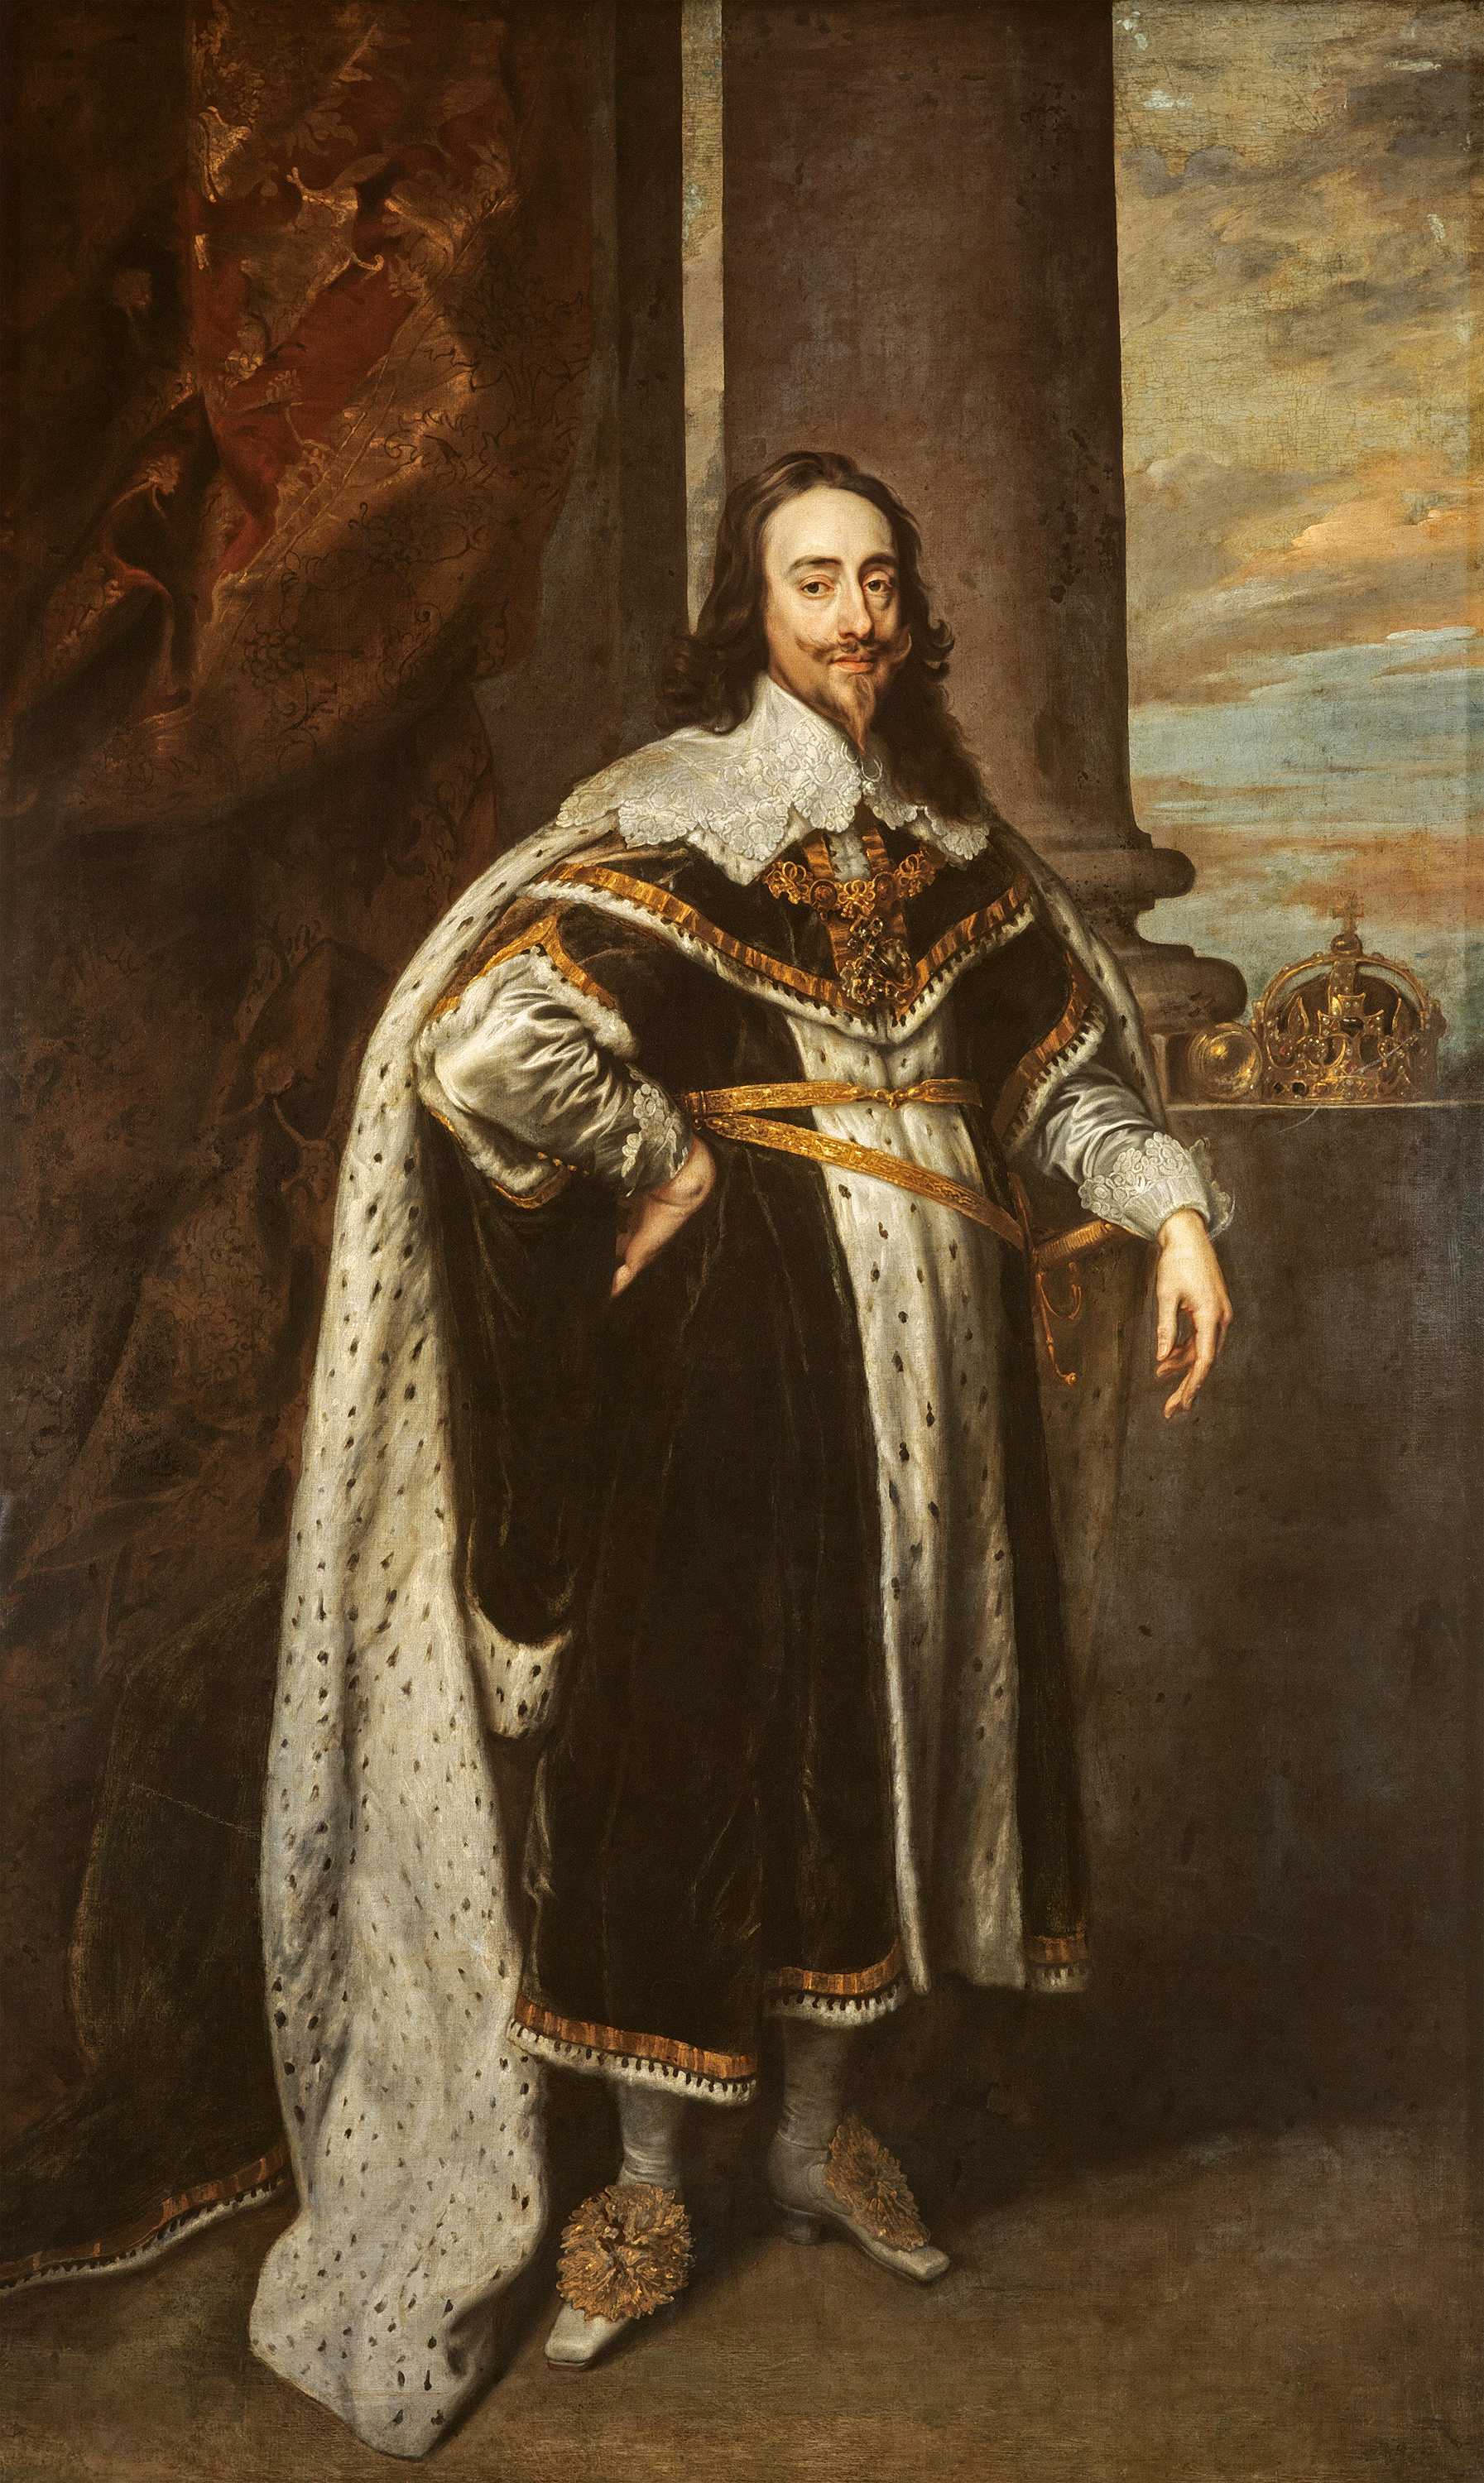 Portrait of Charles I (1600-1649), King of England, Scotland, and Ireland (1625-1649), 1636 | Portraits of Kings